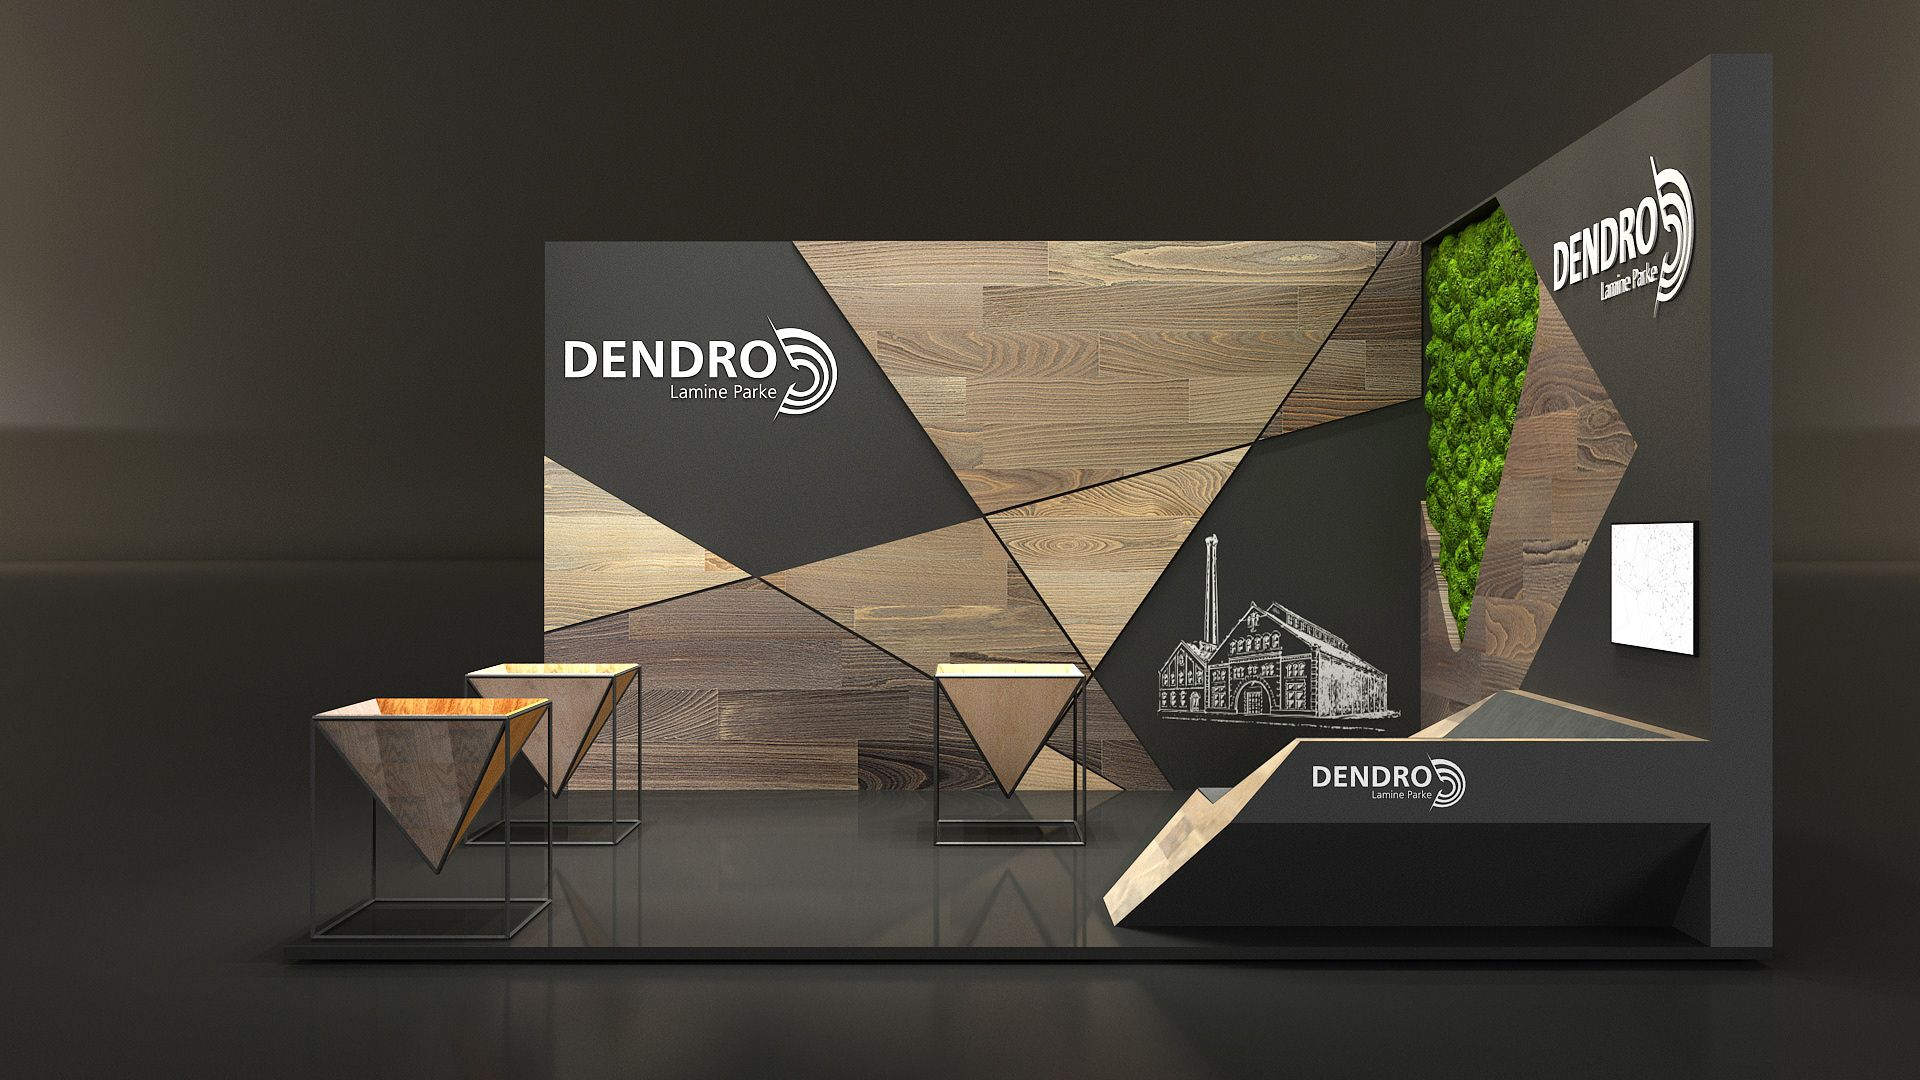 Exhibition Stand Design Graphic : Dendro exhibition stand on behance office interior